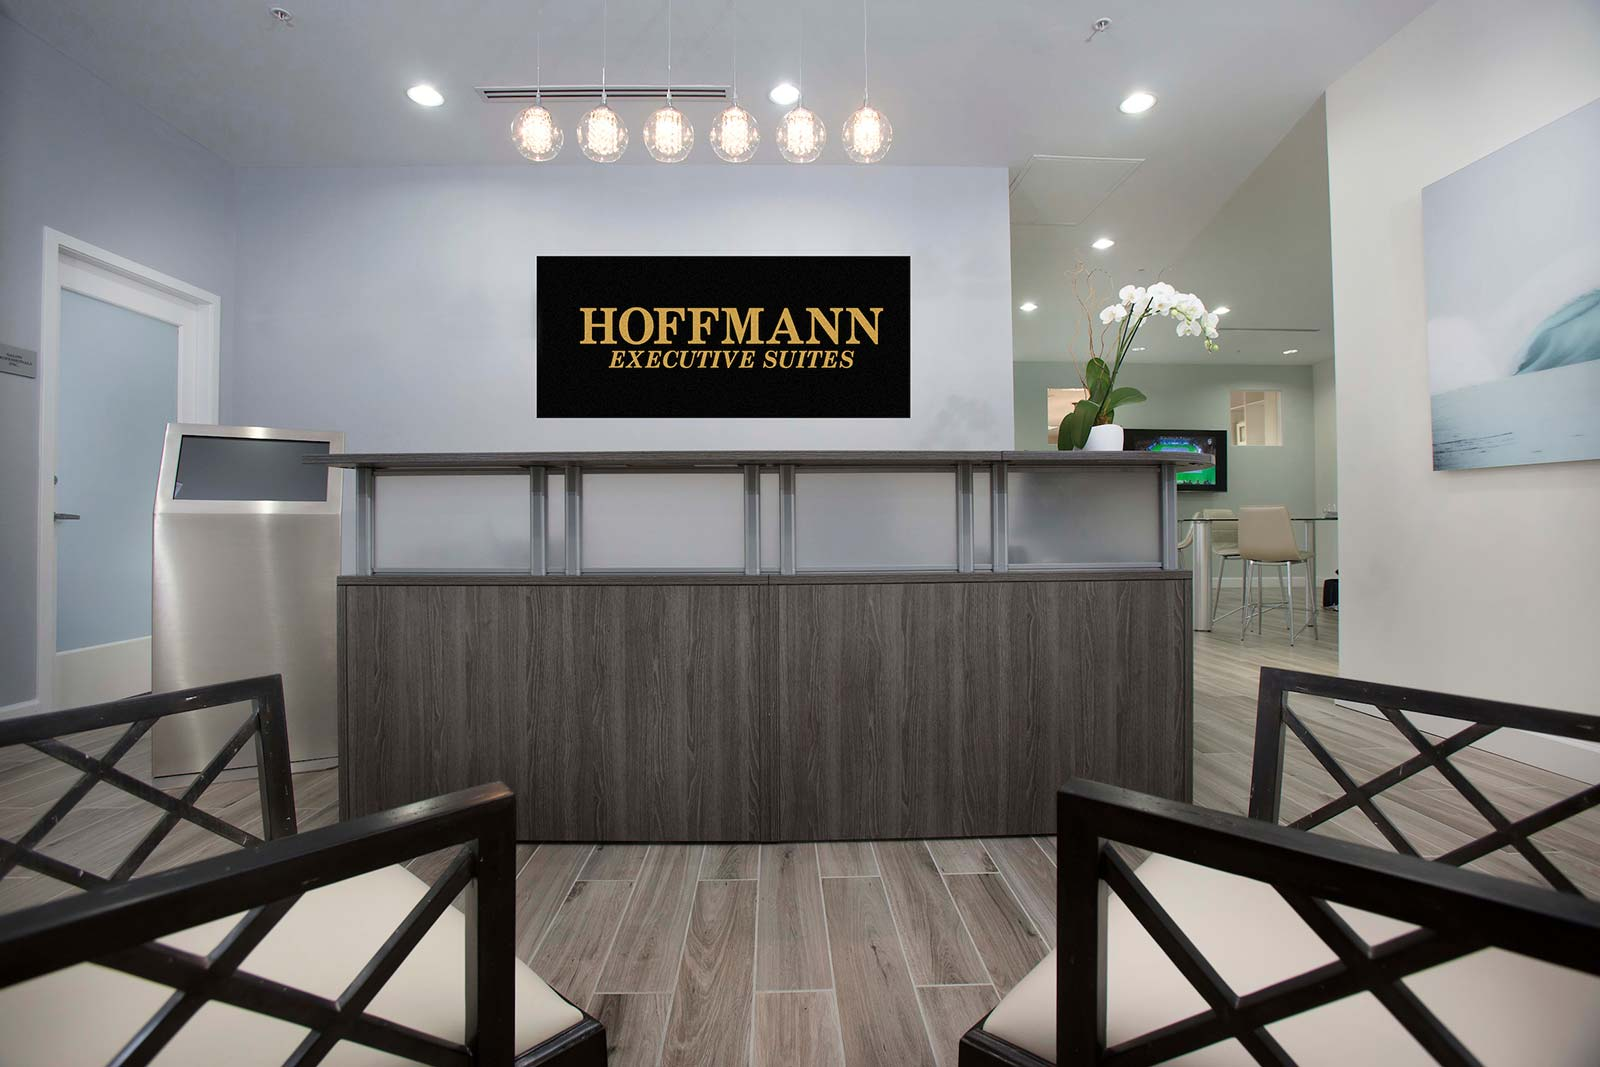 Hoffmann Executive Suites Naples fl office space downtown swfl